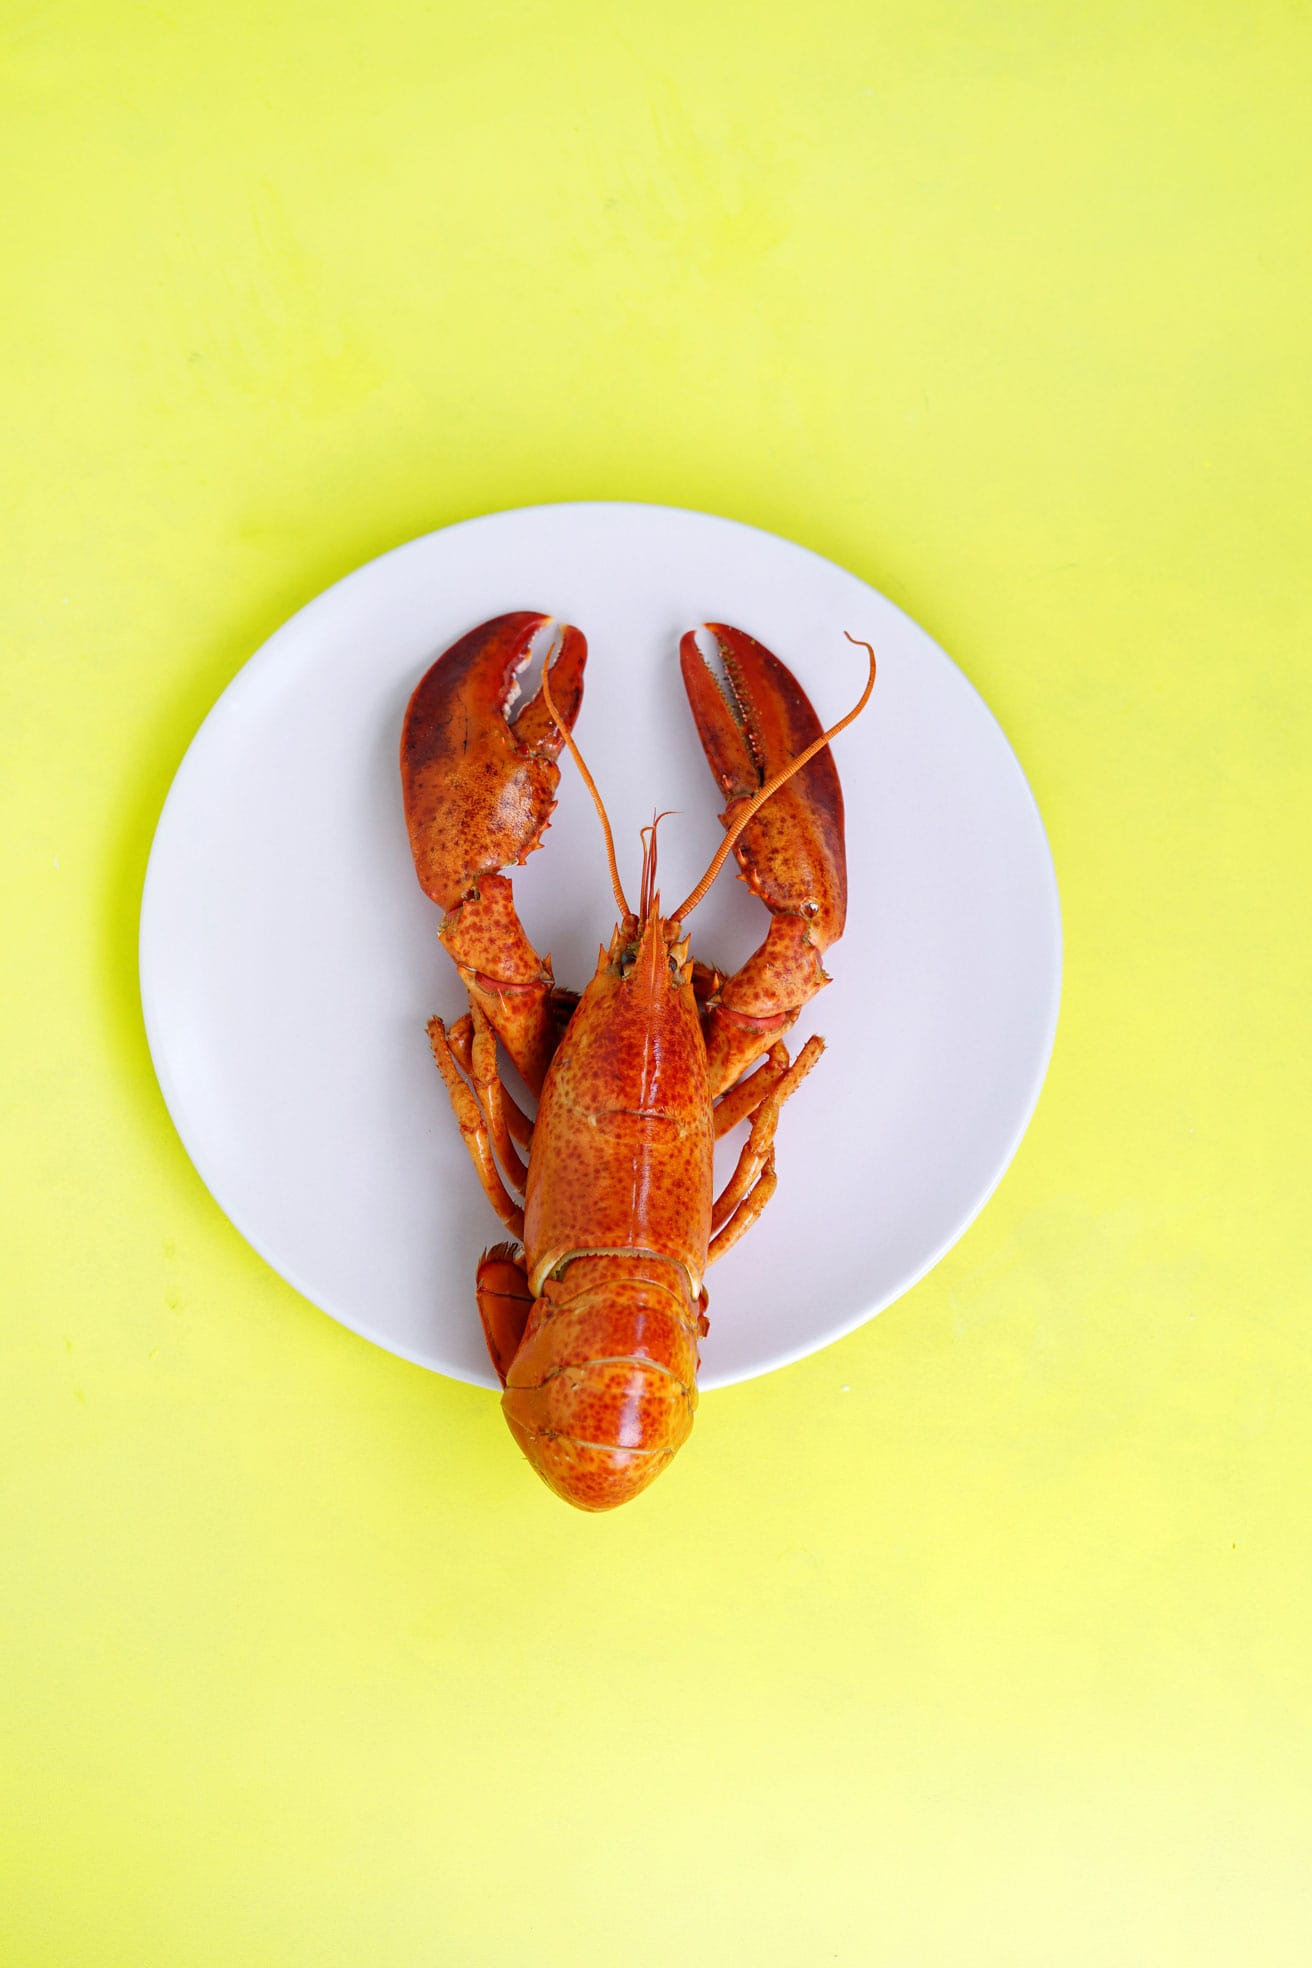 Lobster is expensive food to be on plate